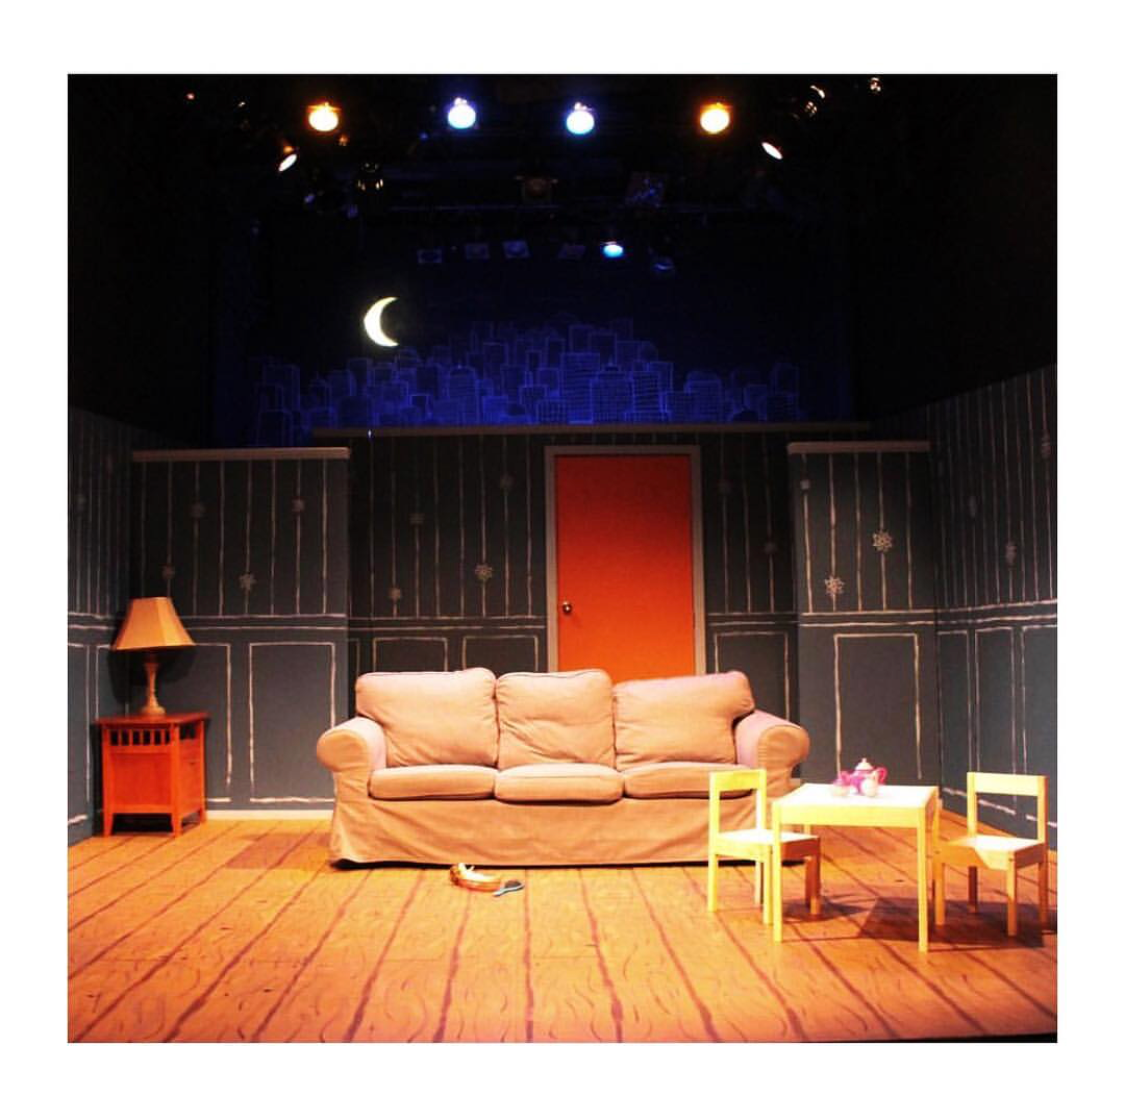 Our beautiful stage designed by Julissa Wright.